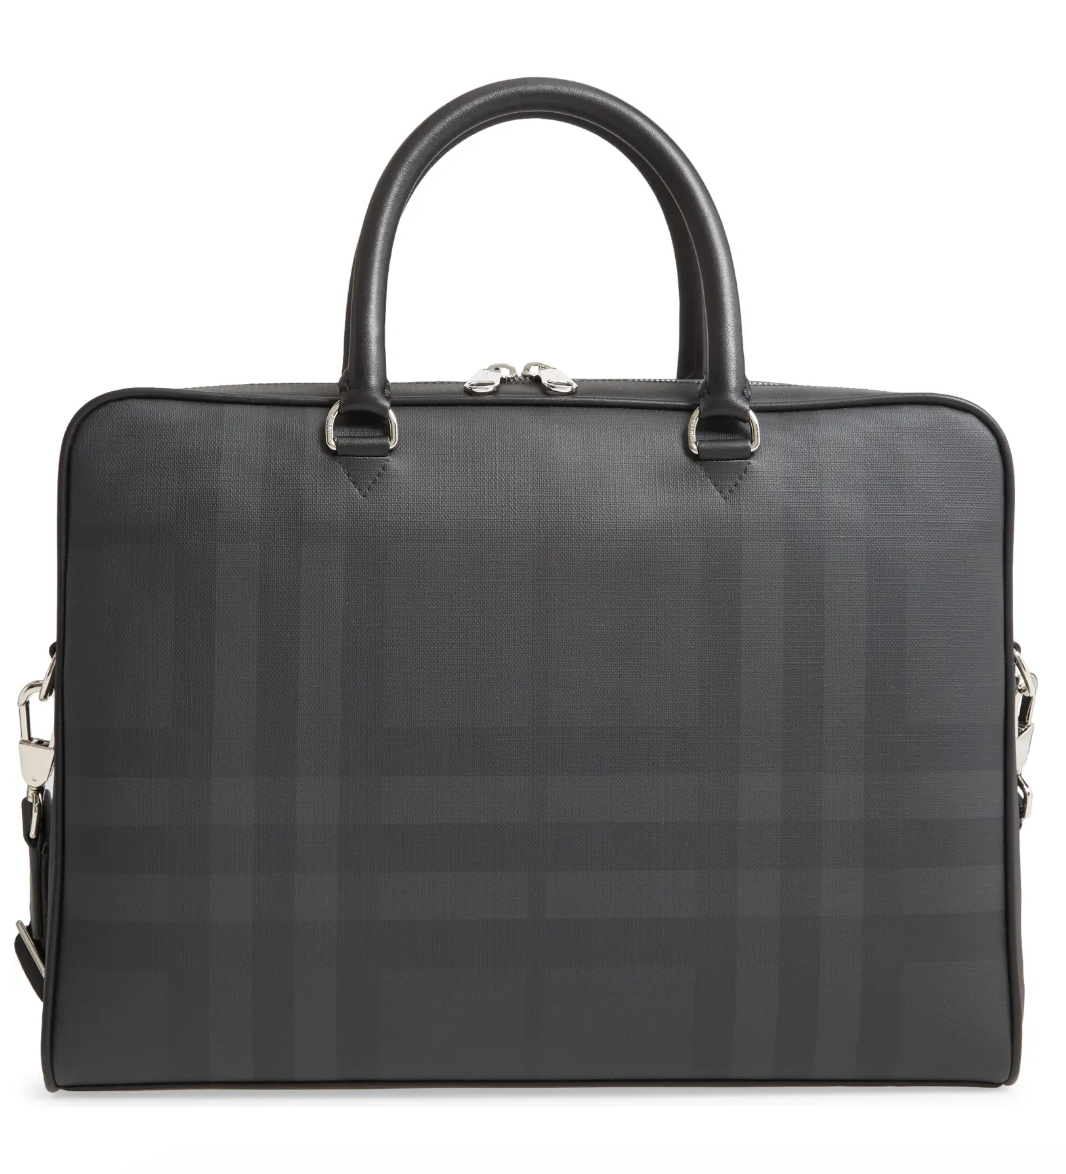 Burberry Ainsworth London Check Coated Canvas & Leather Briefcase